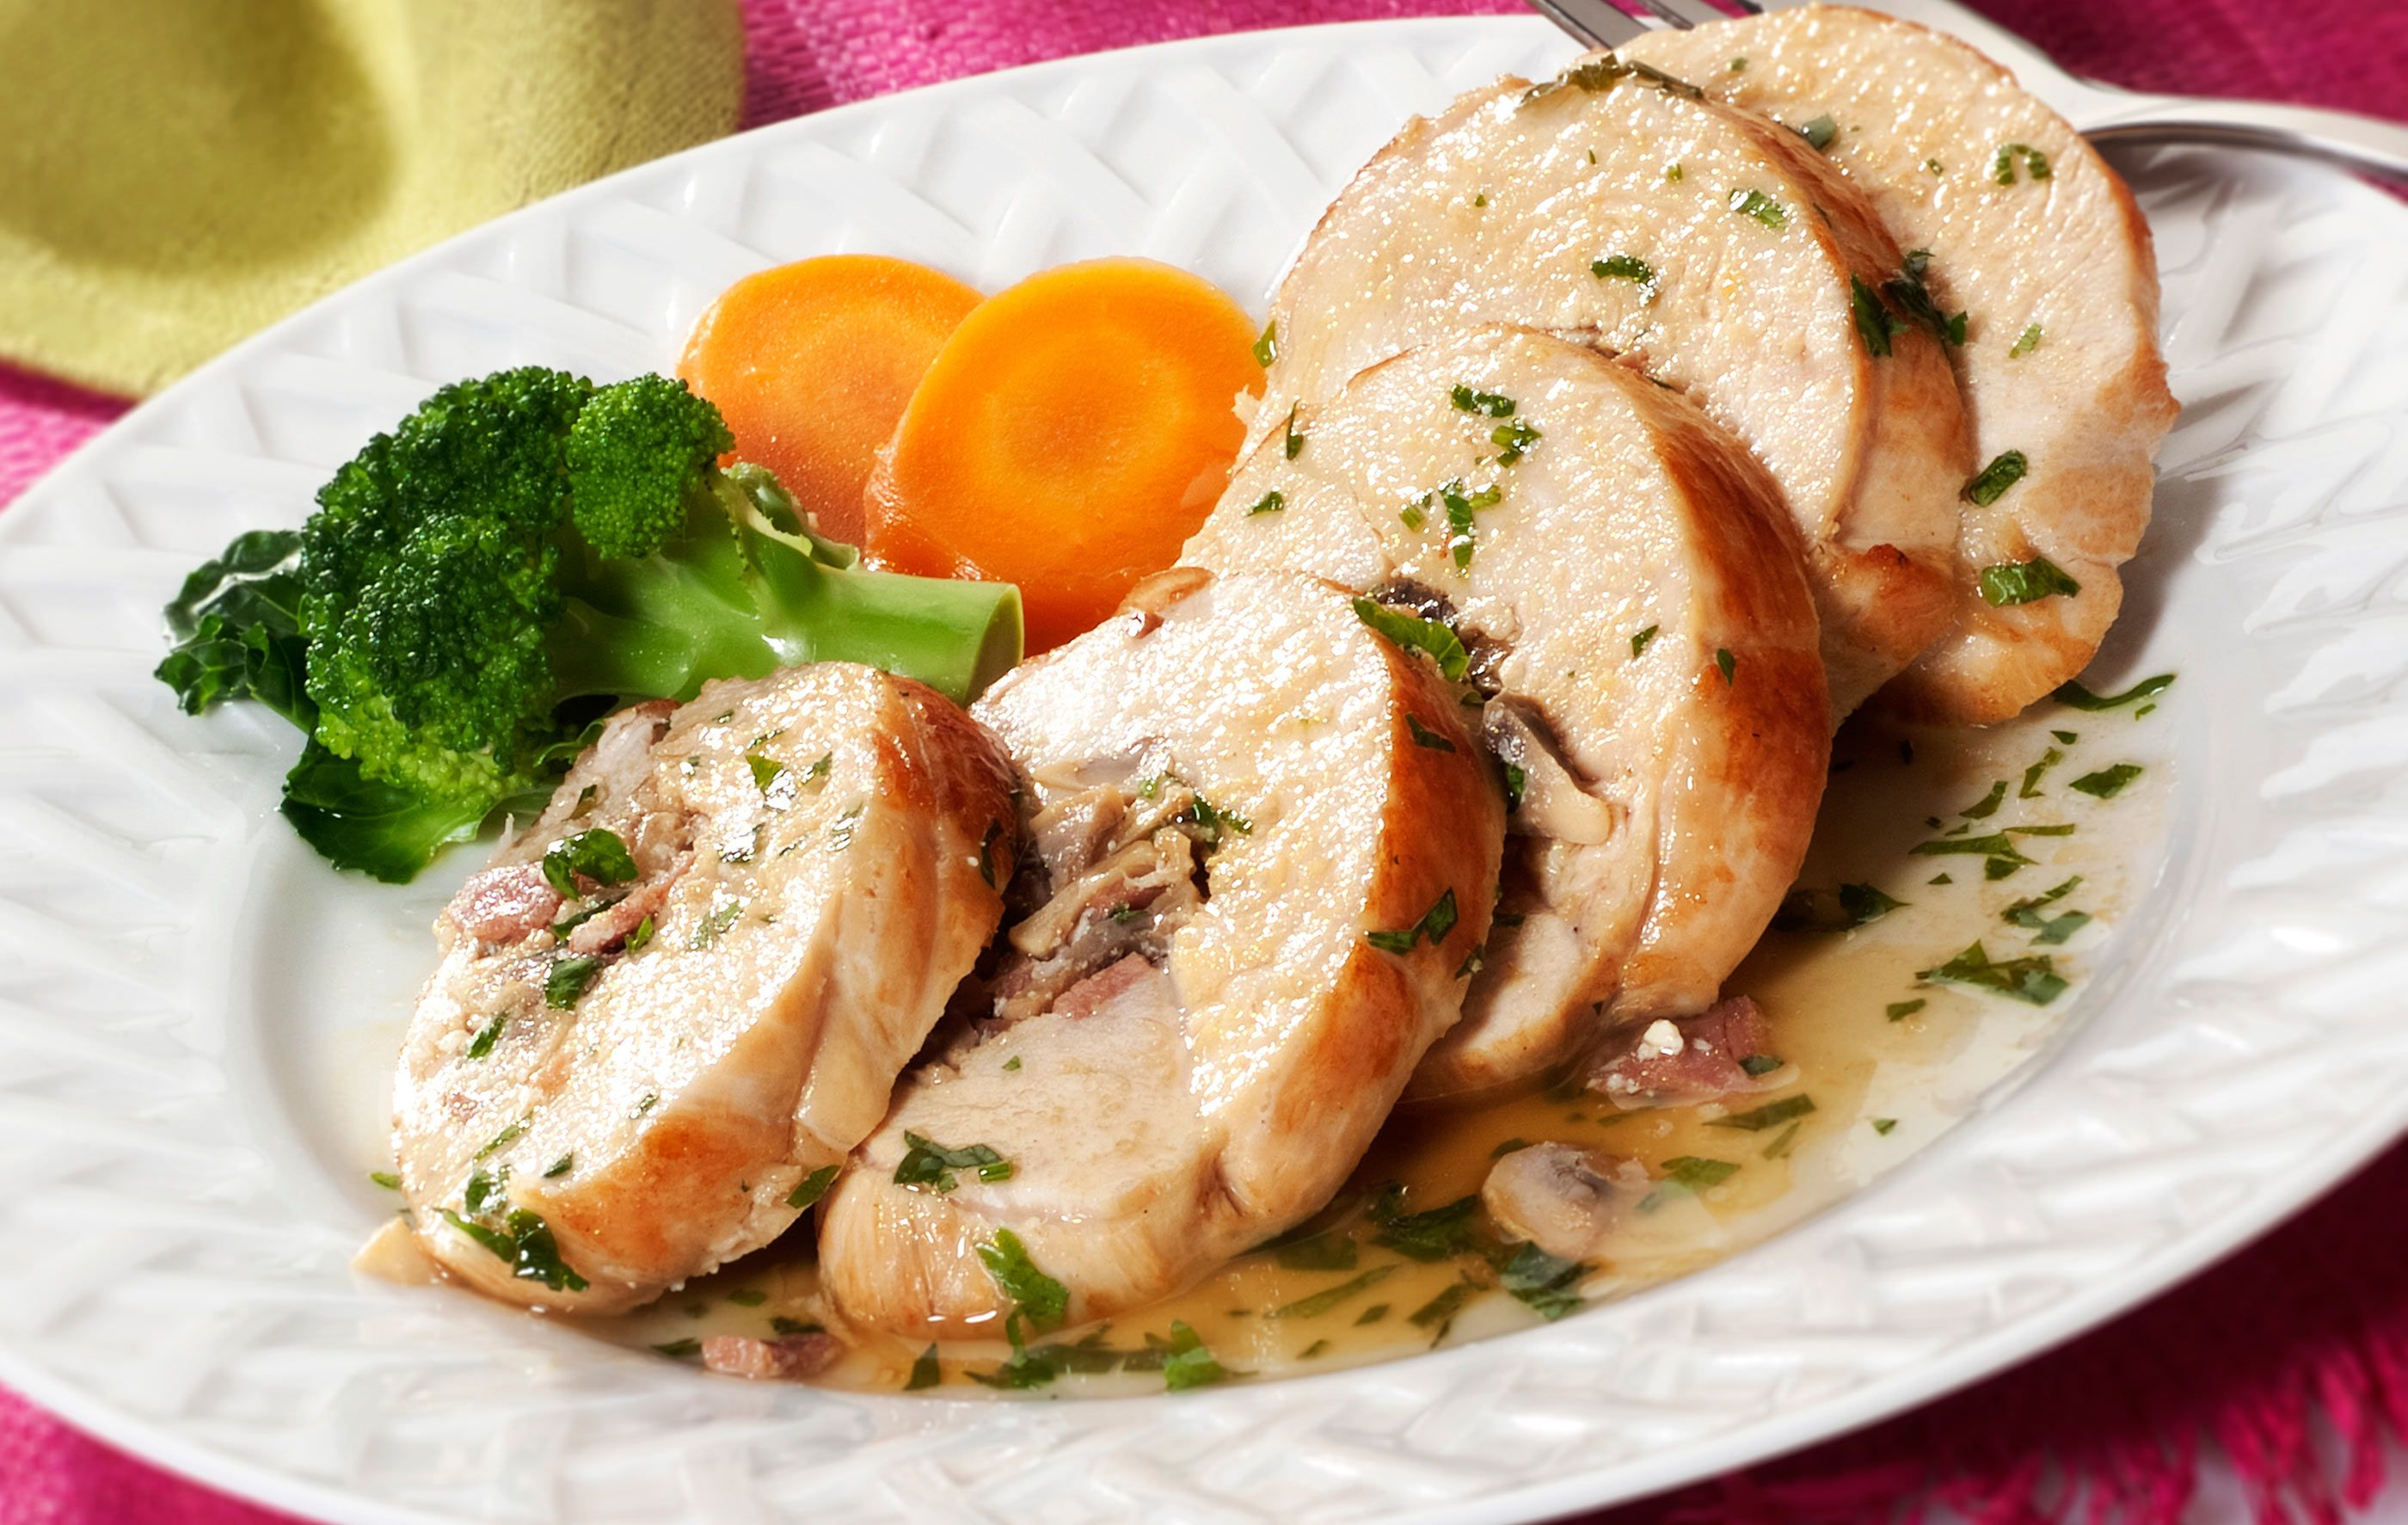 Chicken Breasts Stuffed With Cheese and Mushrooms